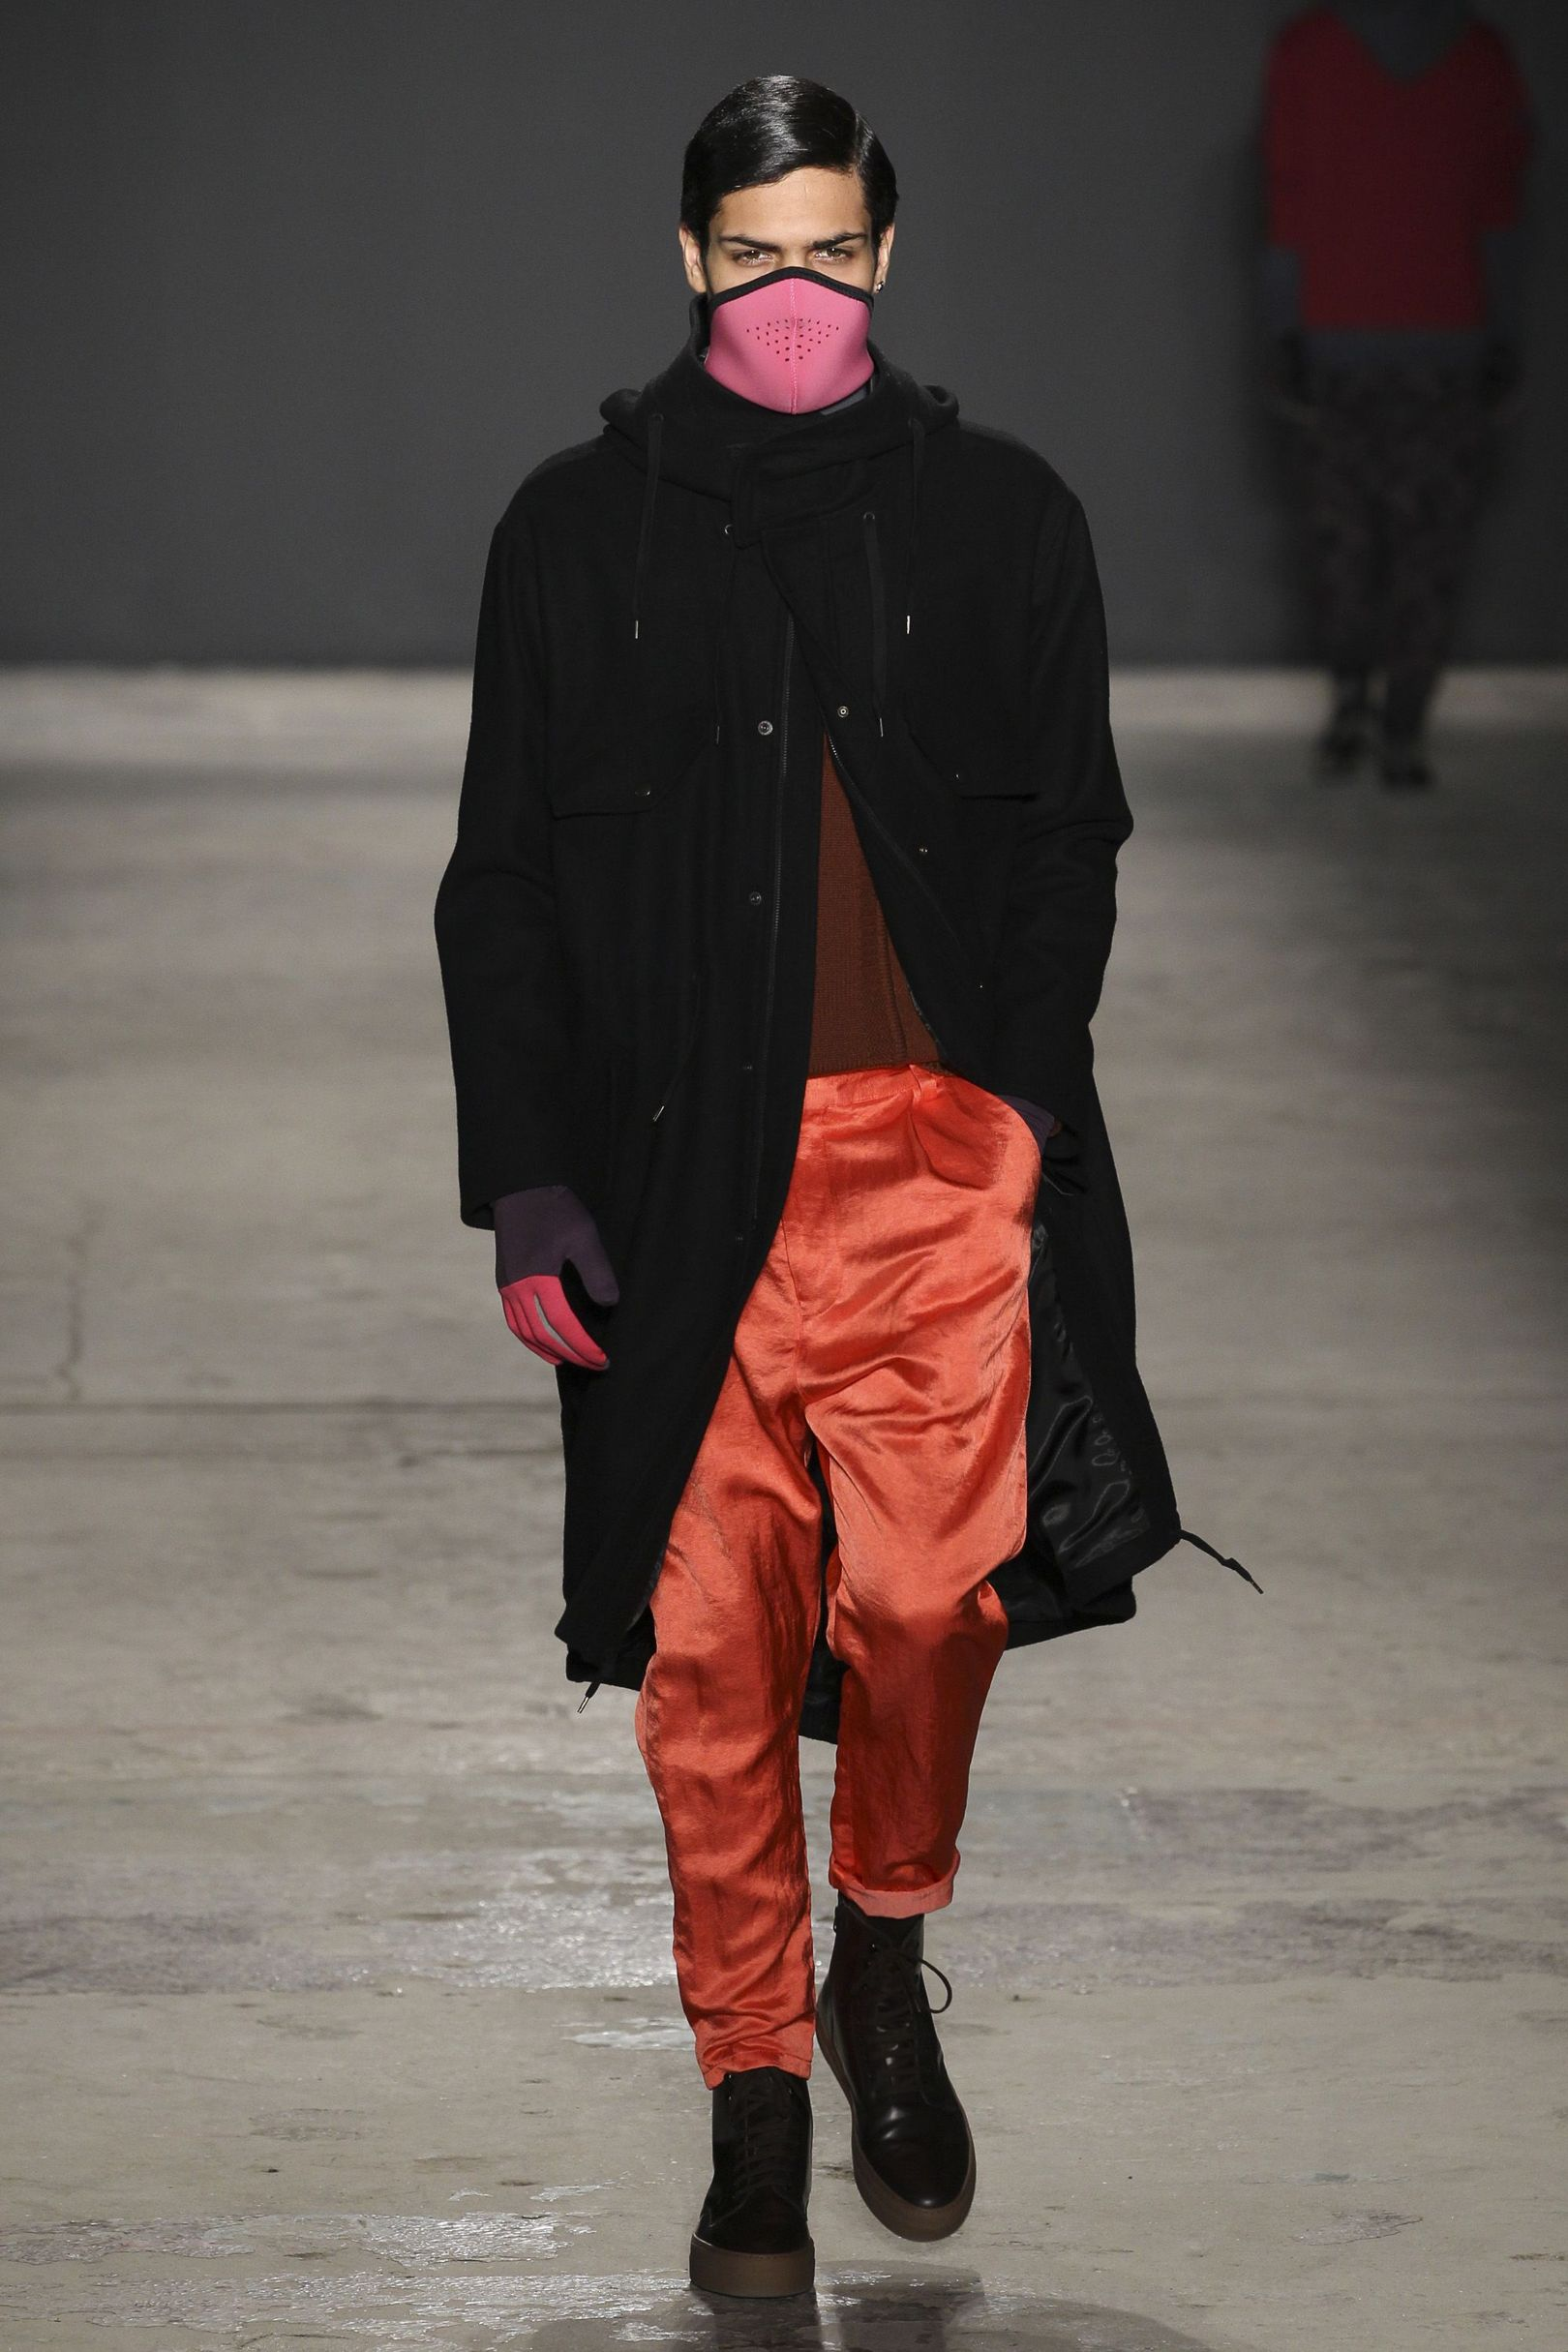 NYFWM: Robert Geller Fall/Winter 2017 Collection